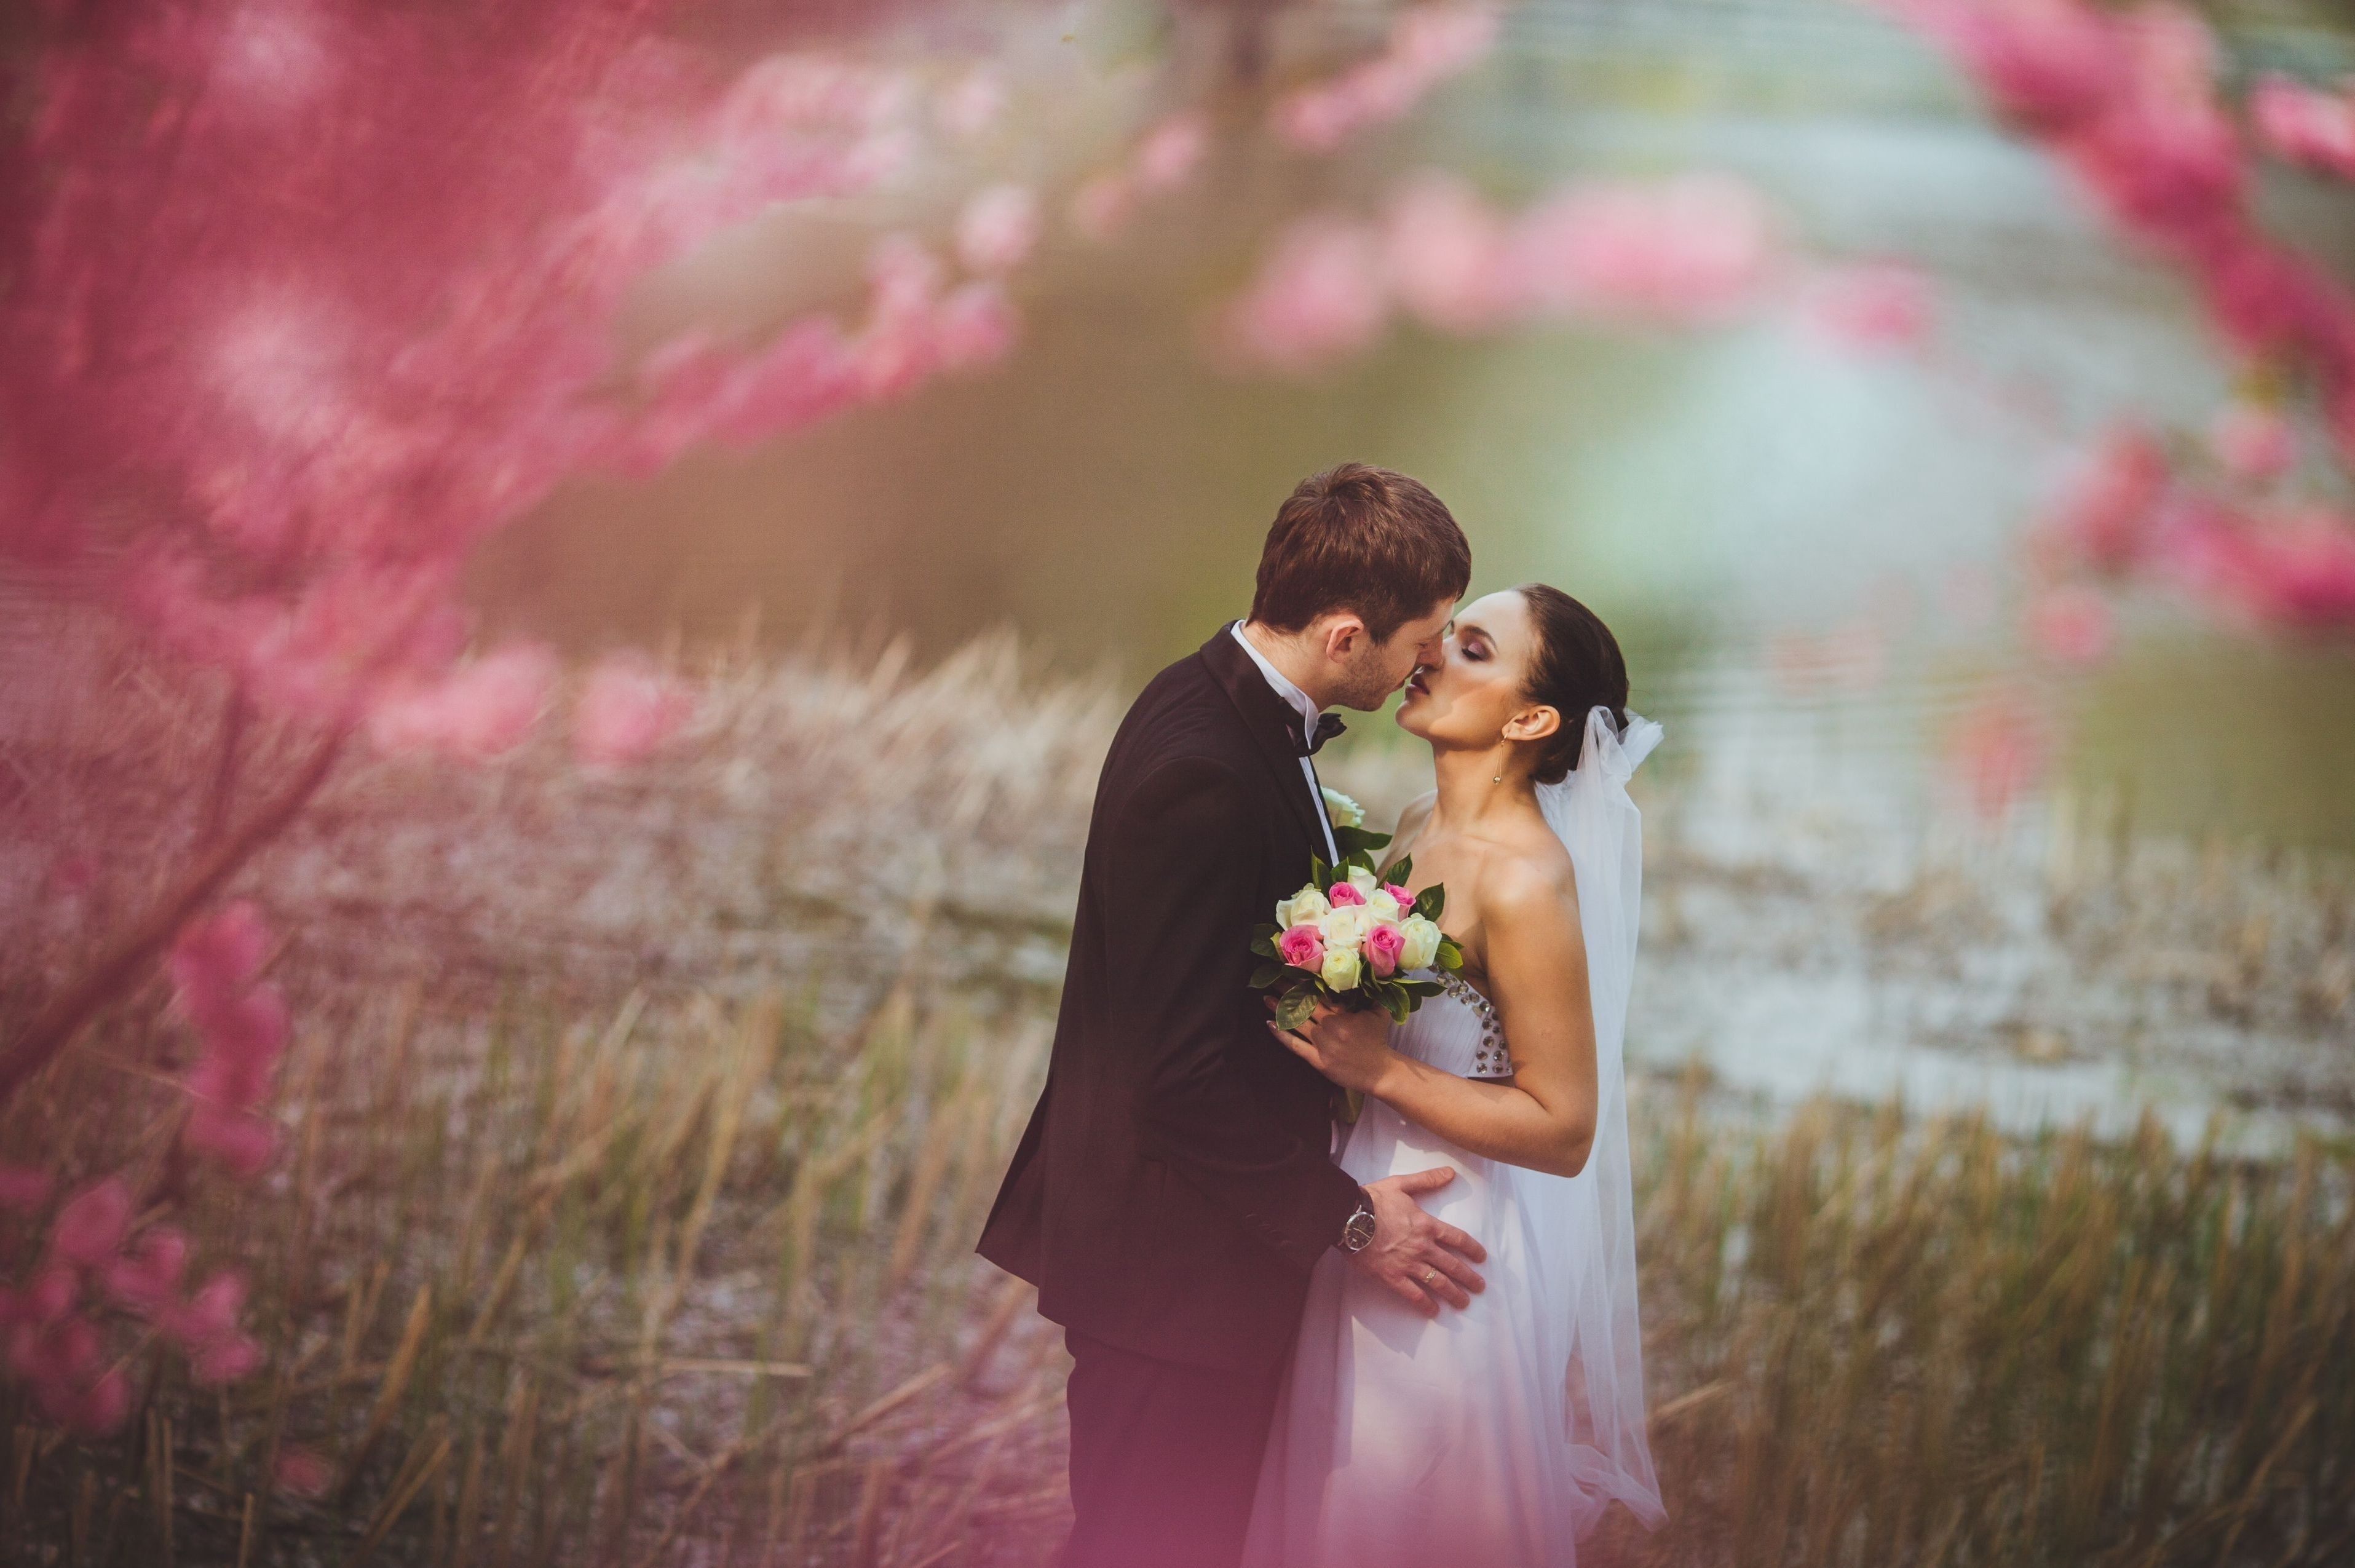 Download Wallpaper Of Love And Kiss Hd New Wallpaper Of Love And